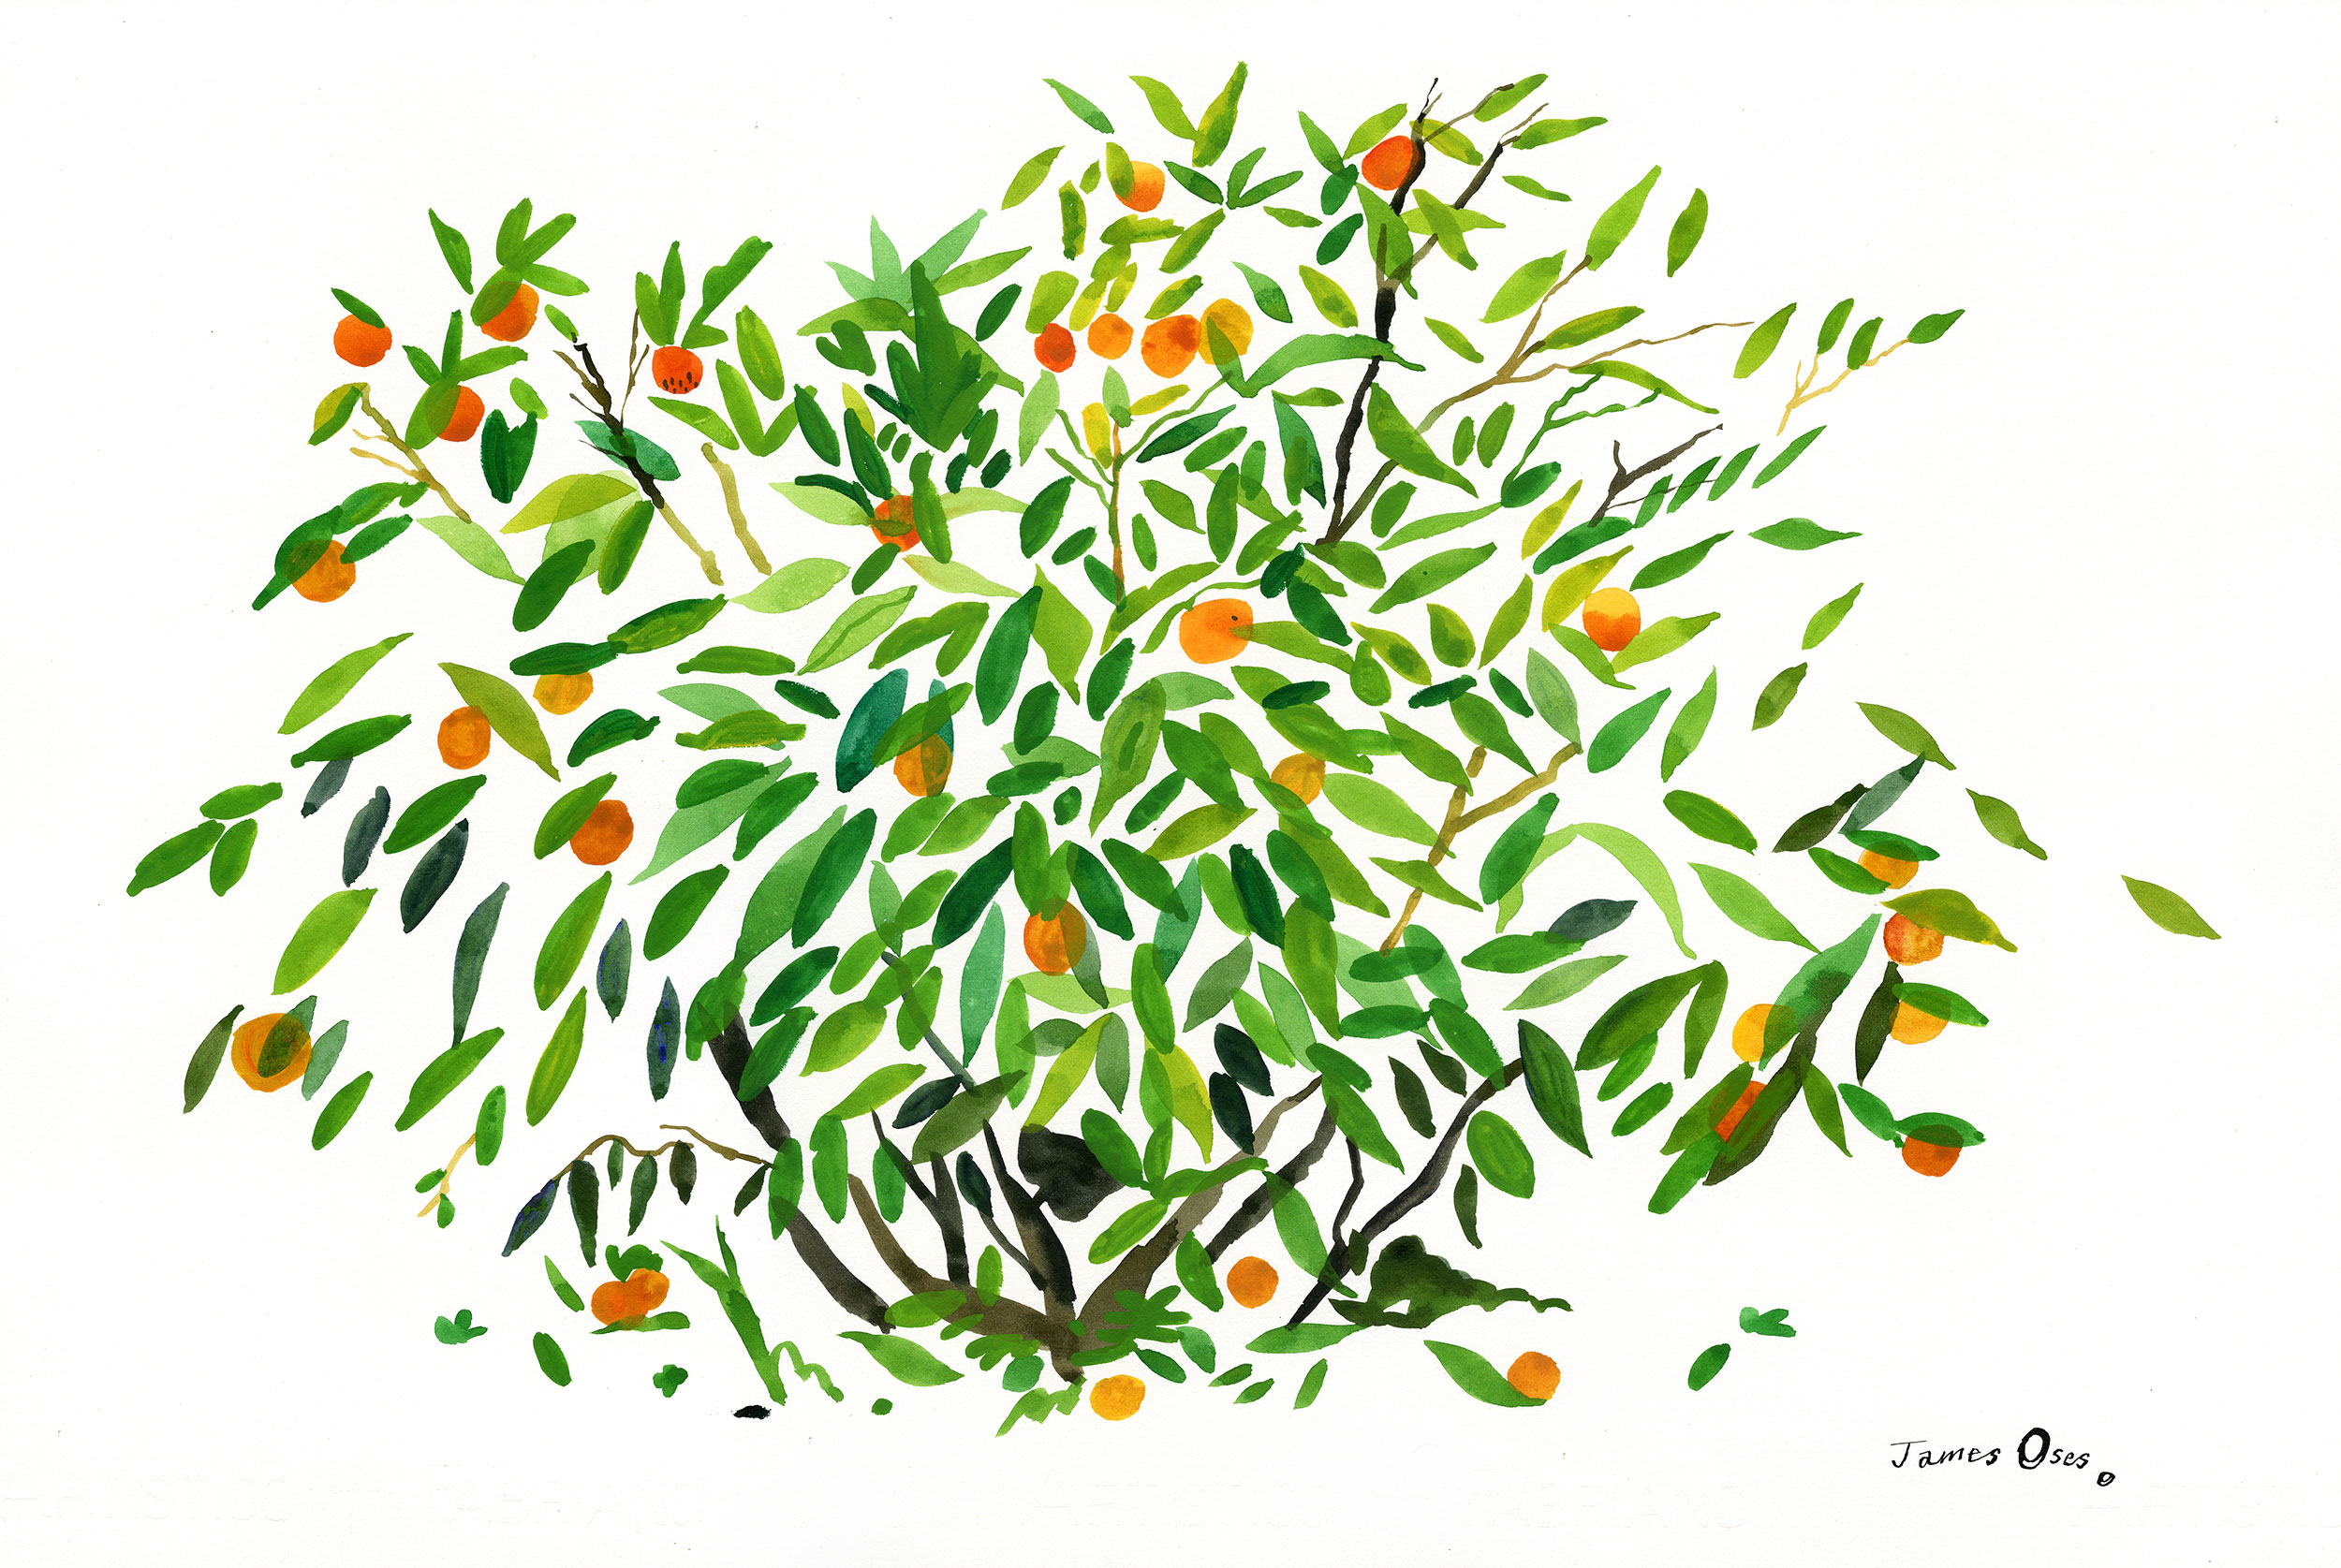 Orange tree by James Oses